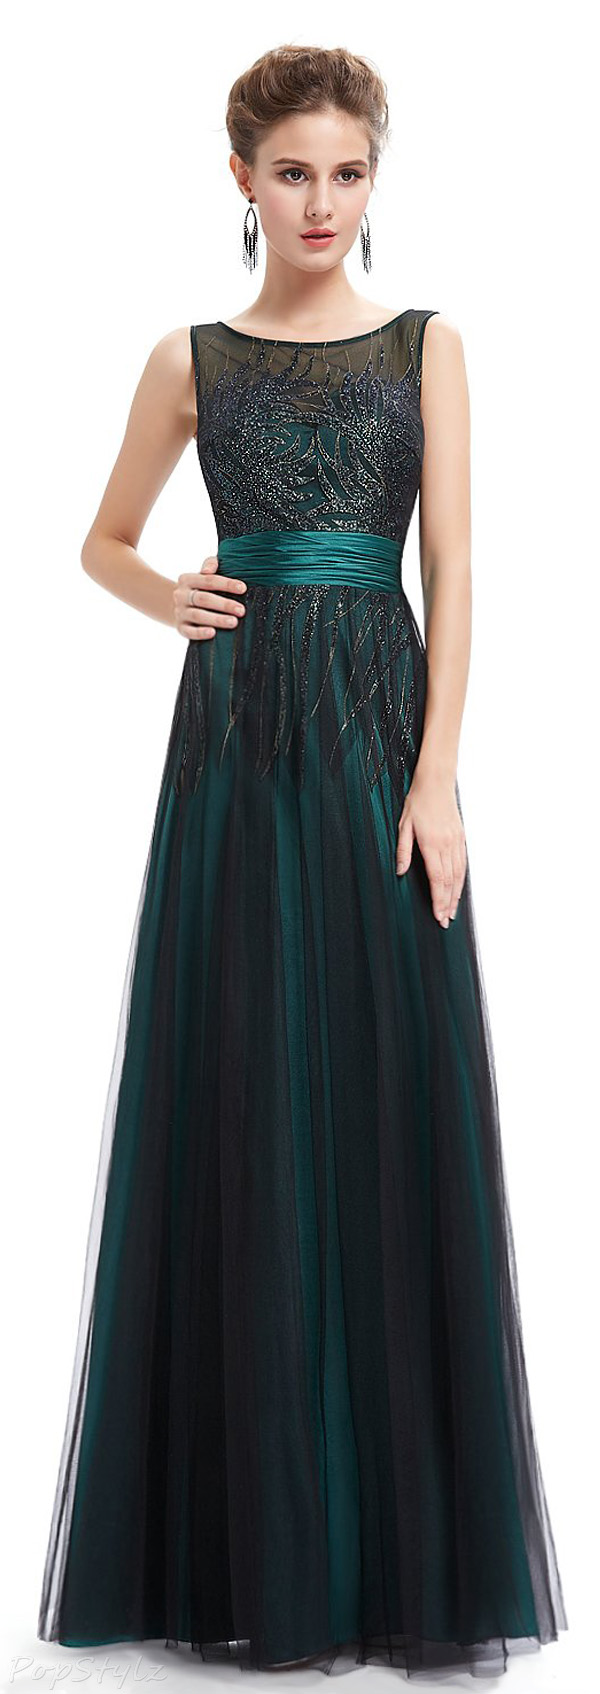 Ever Pretty 08740 Sleeveless Shimmery Floor Length Dress